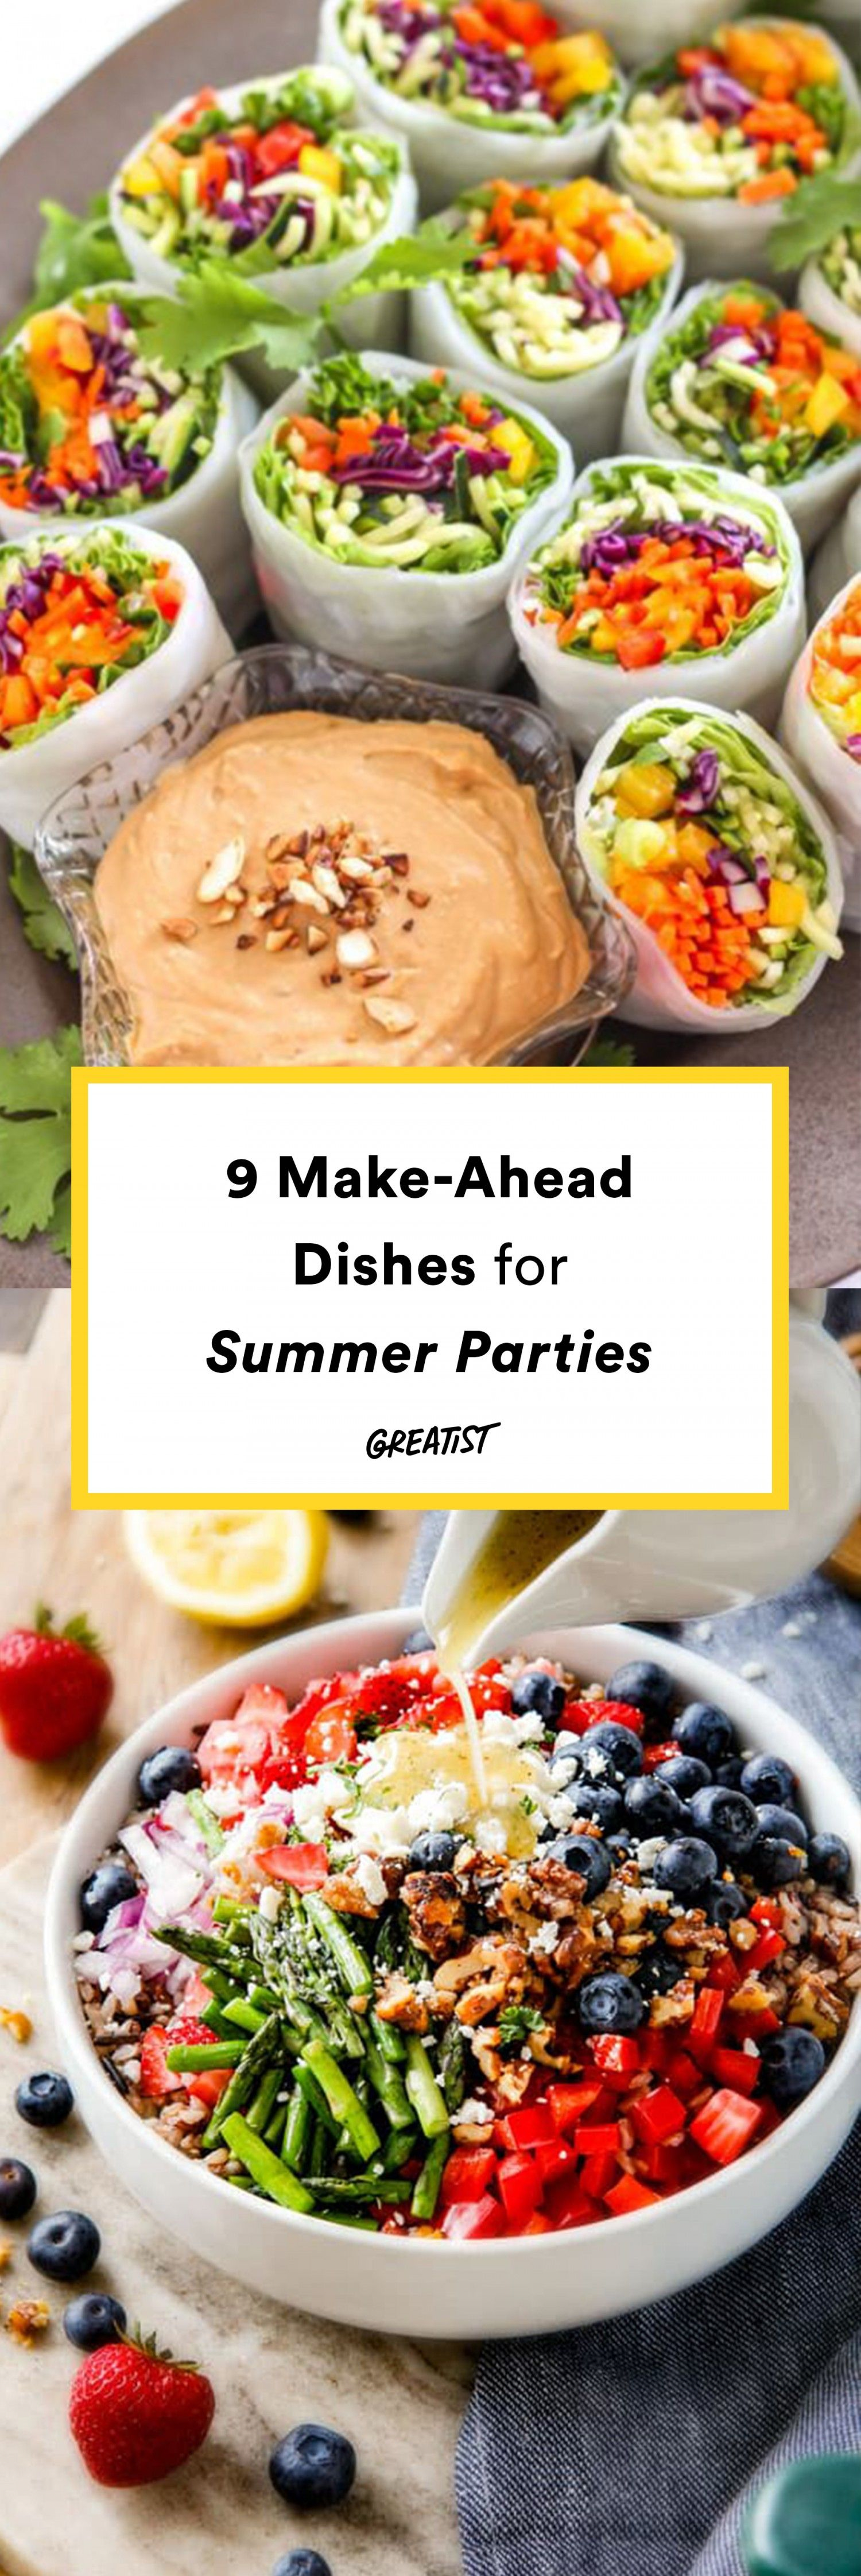 Photo of 9 Make-Ahead Dishes for Summer Parties